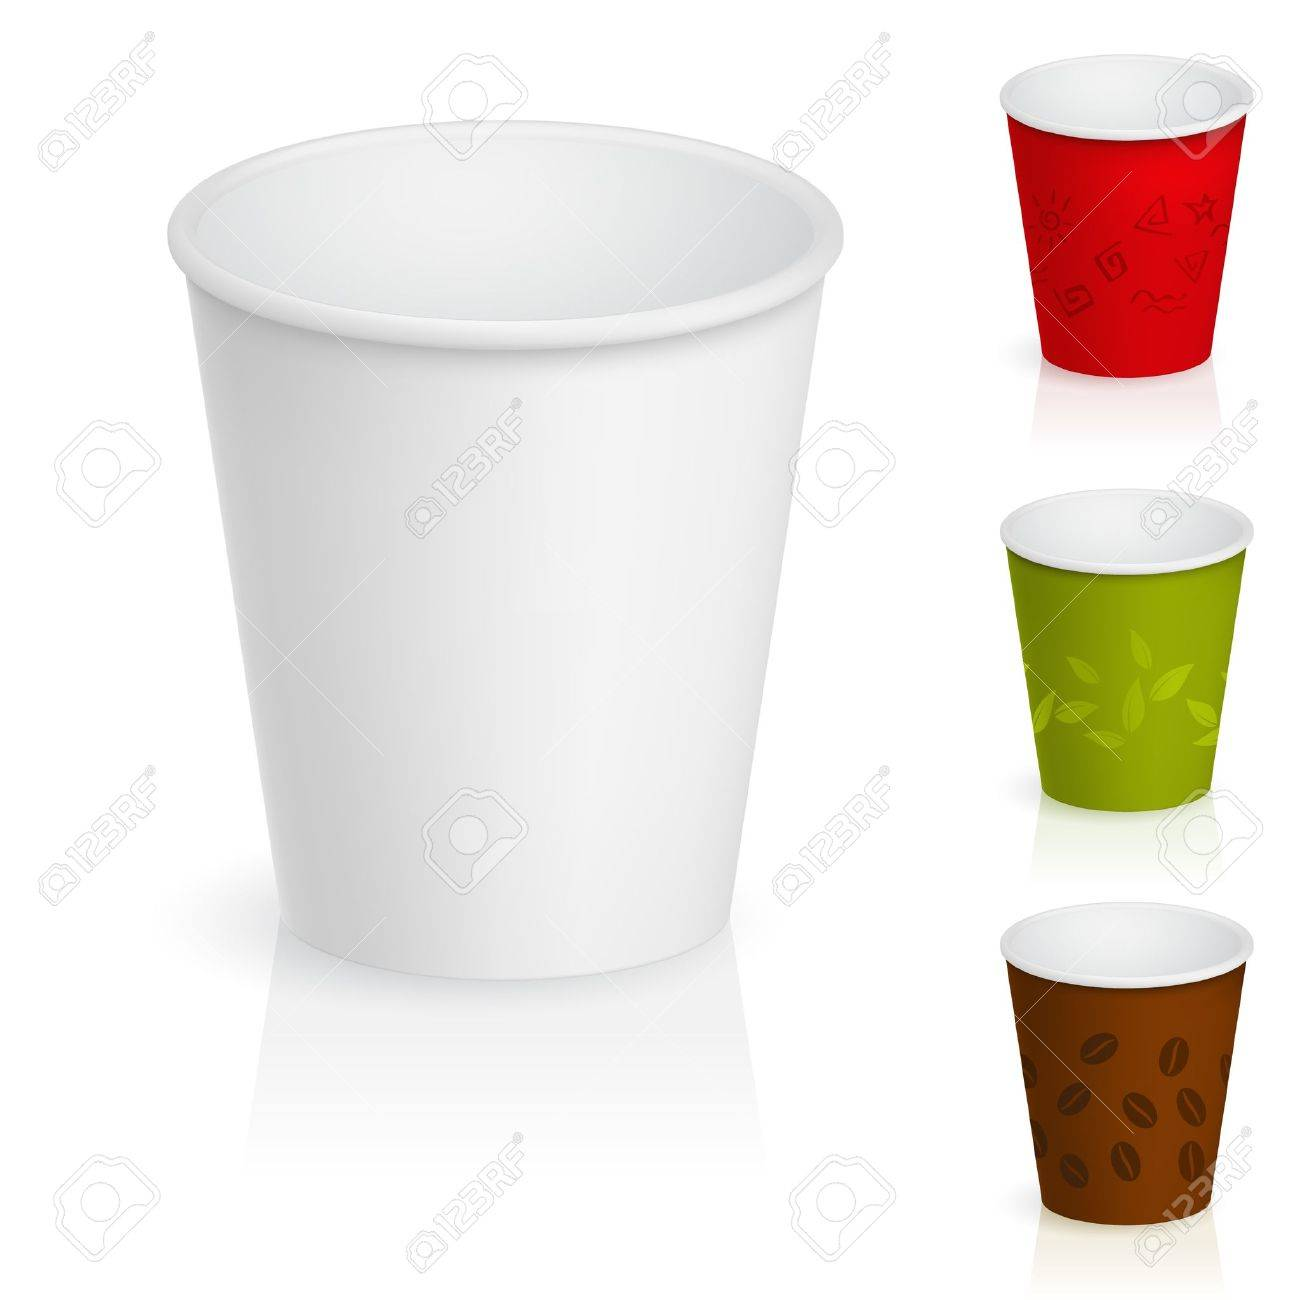 Set of empty cardboard coffee cups. Illustration on white background Stock Vector - 9736729